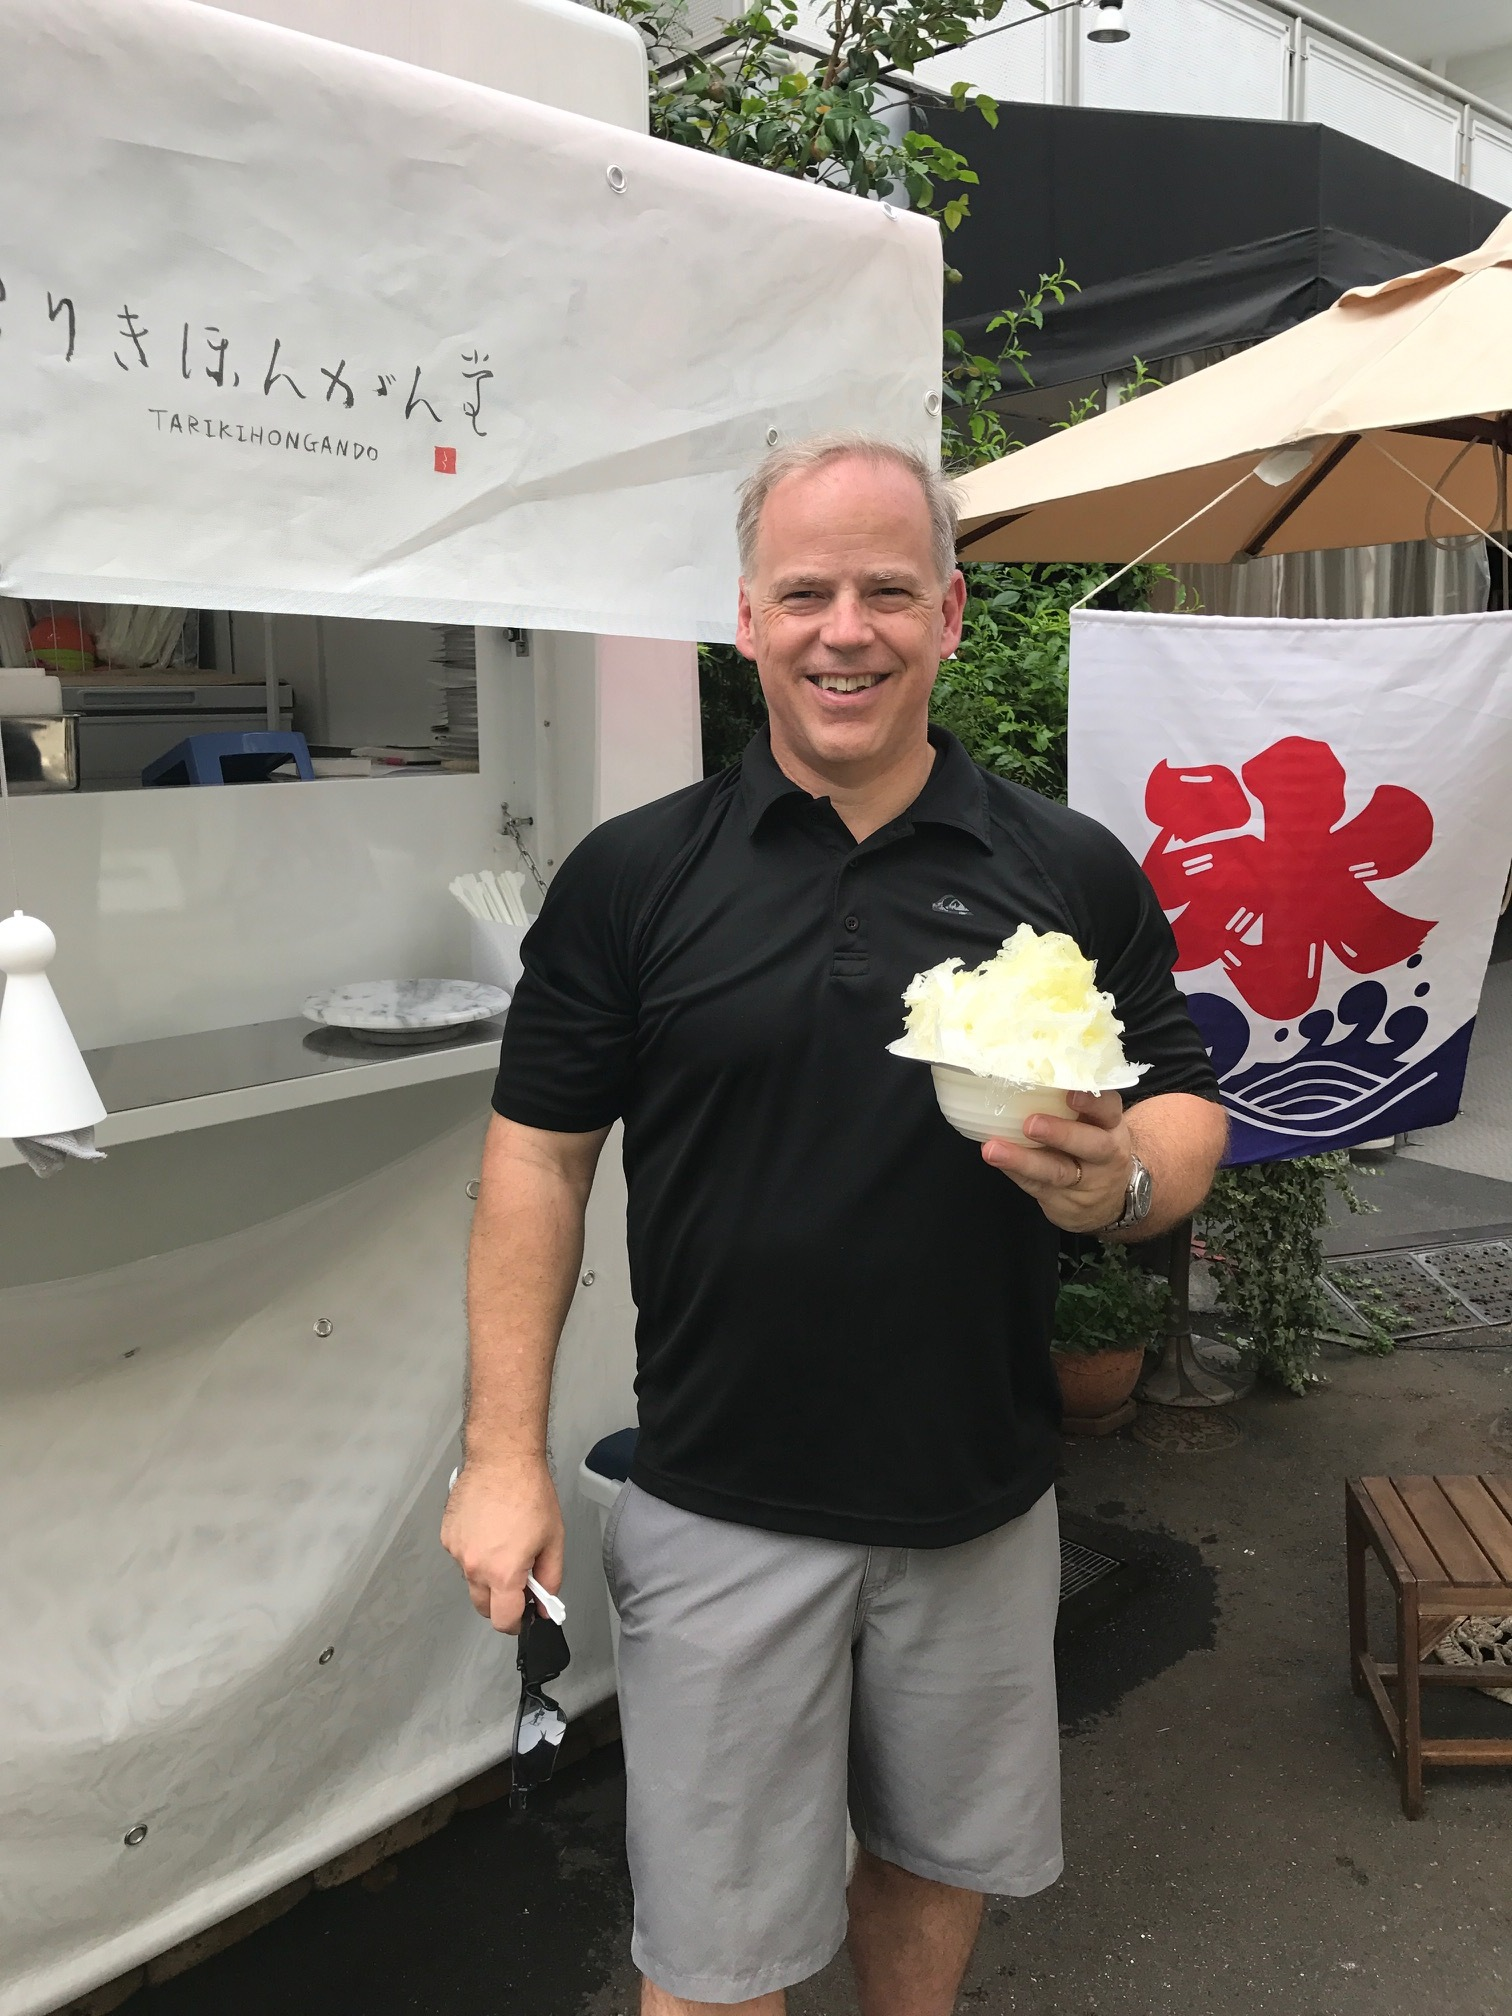 Delicious Shave Ice in Japan